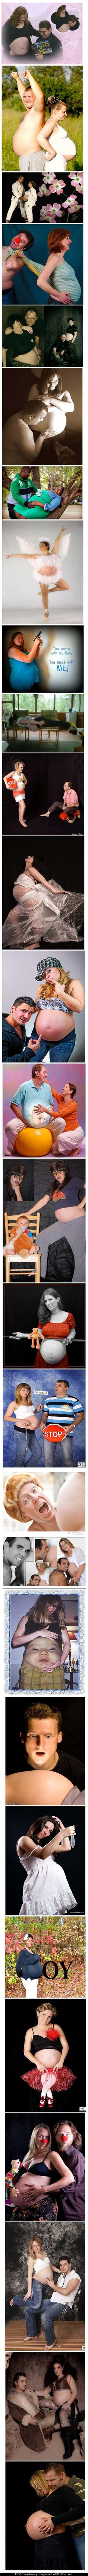 Totally awkward pregnancy photos... Please, please, PLEASE, if any of my friends get pregnant, recreate these pictures!